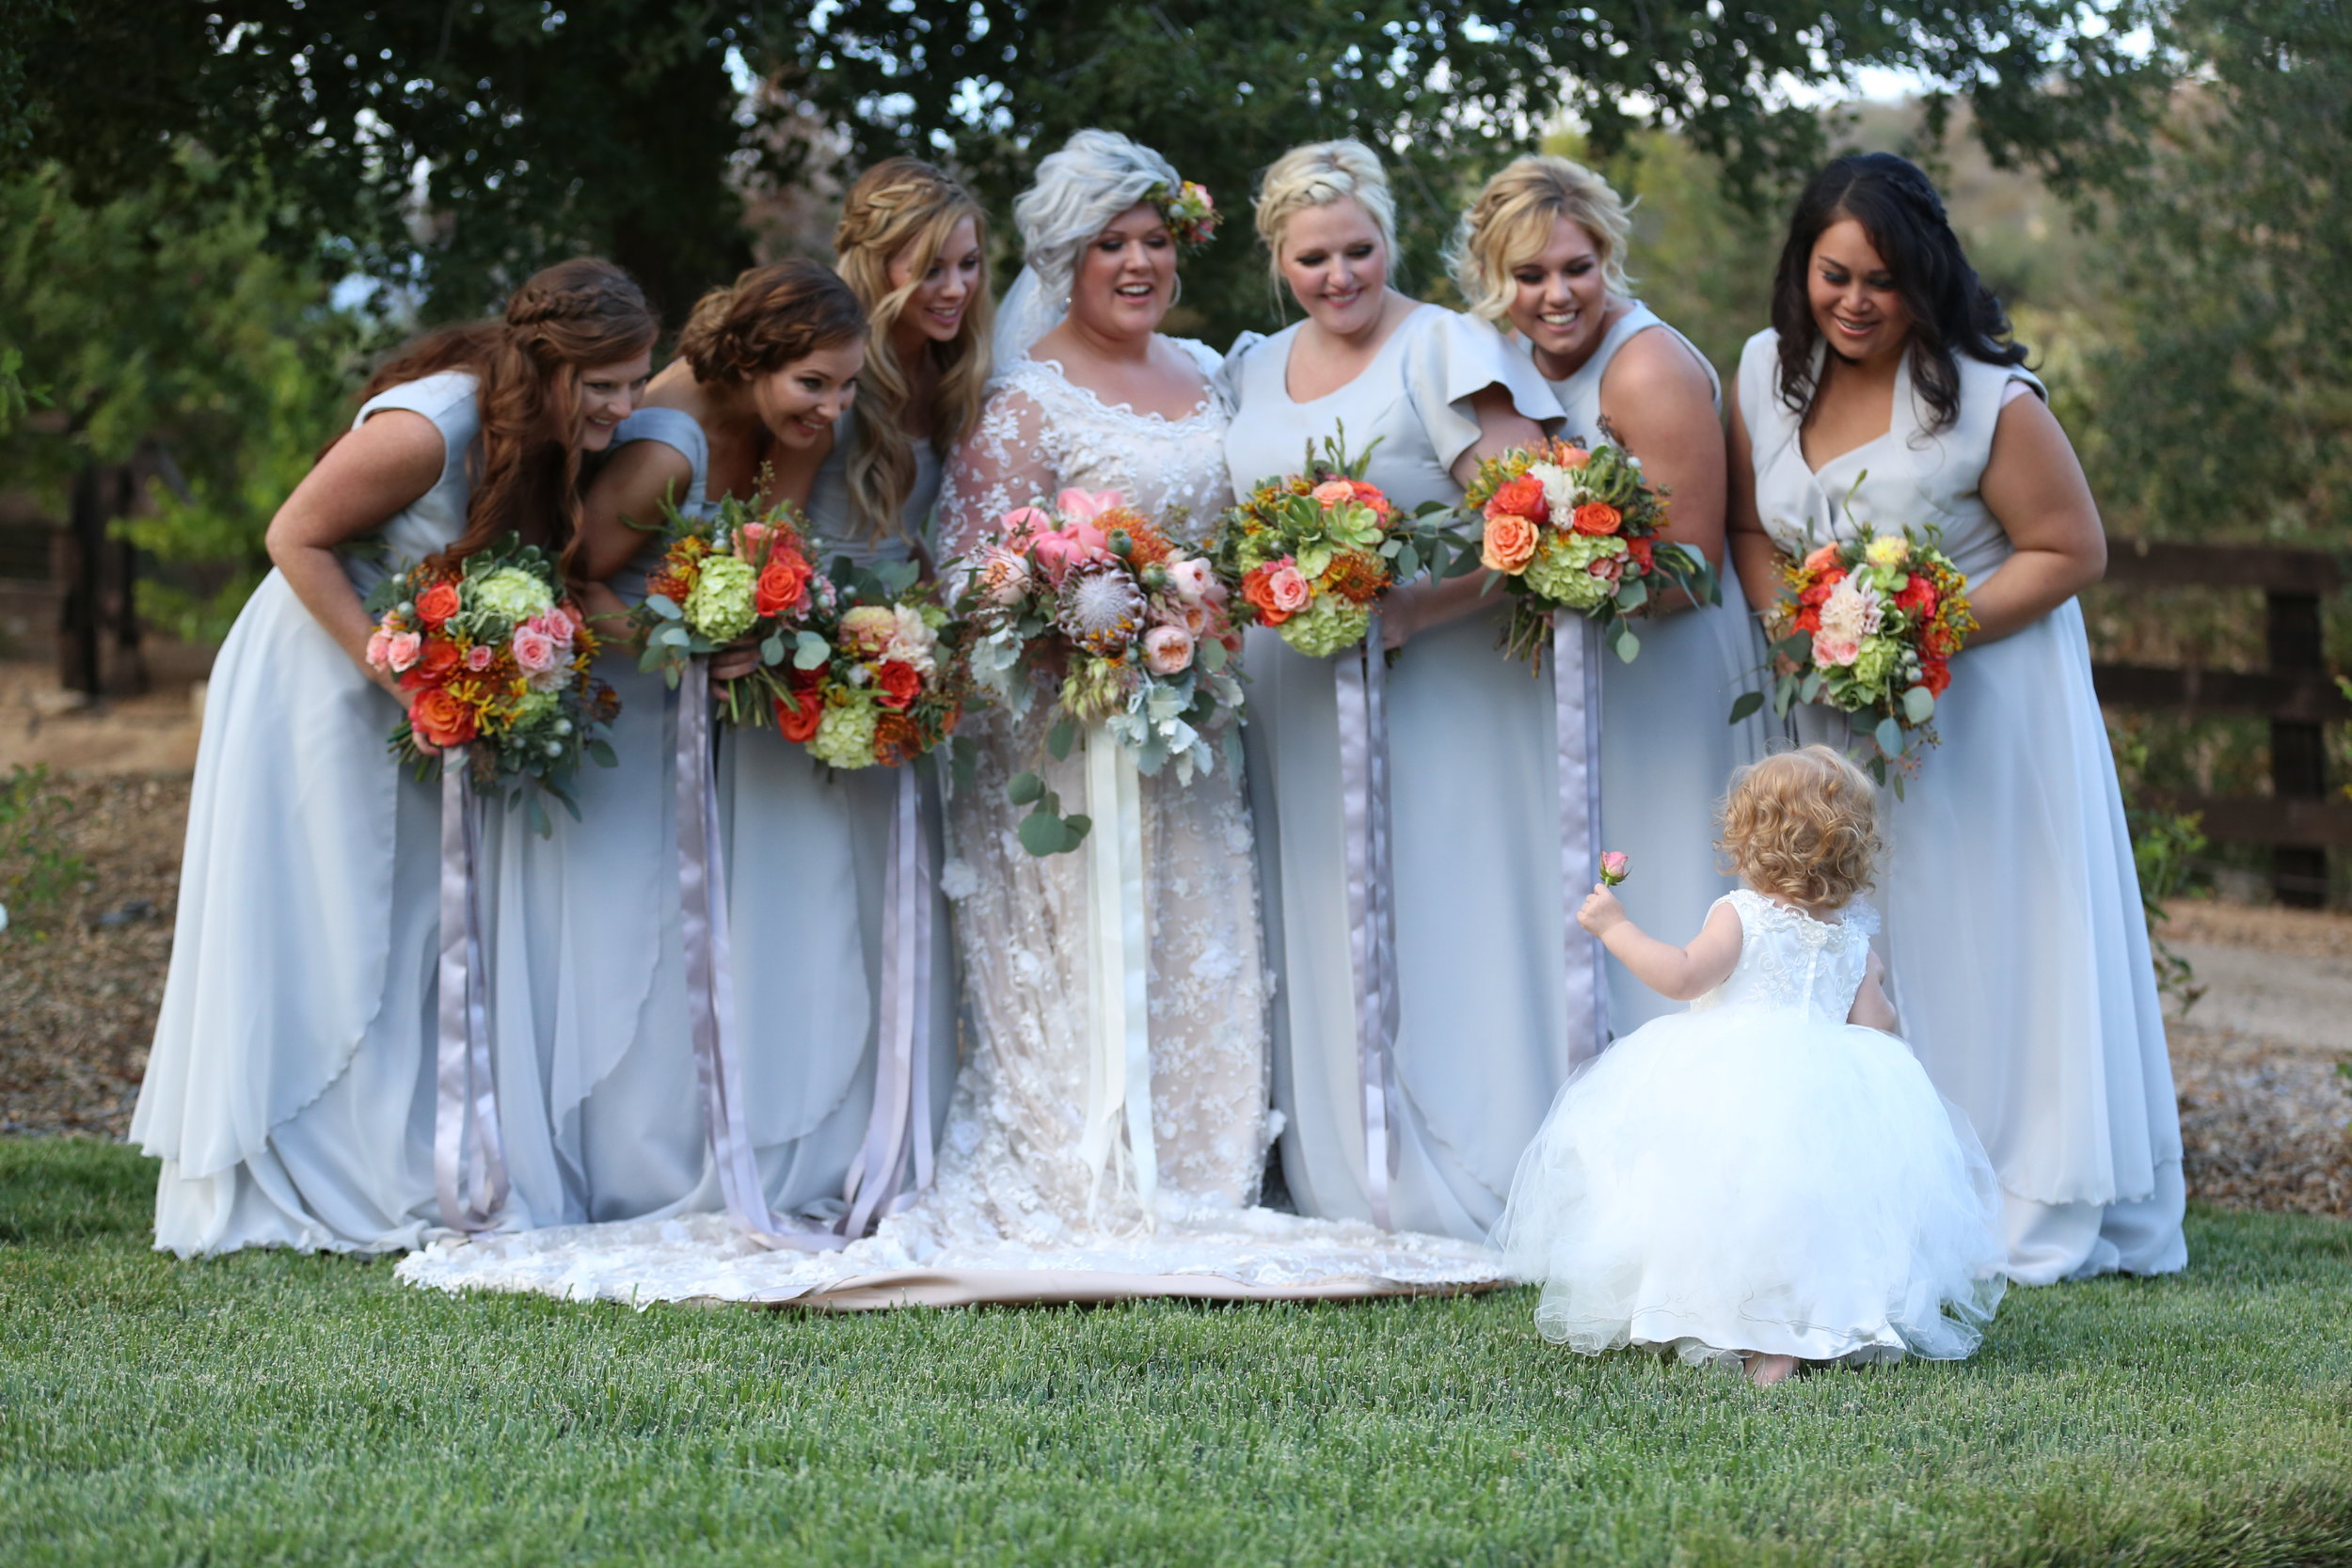 Brides and bridesmaids on the. big wedding day.